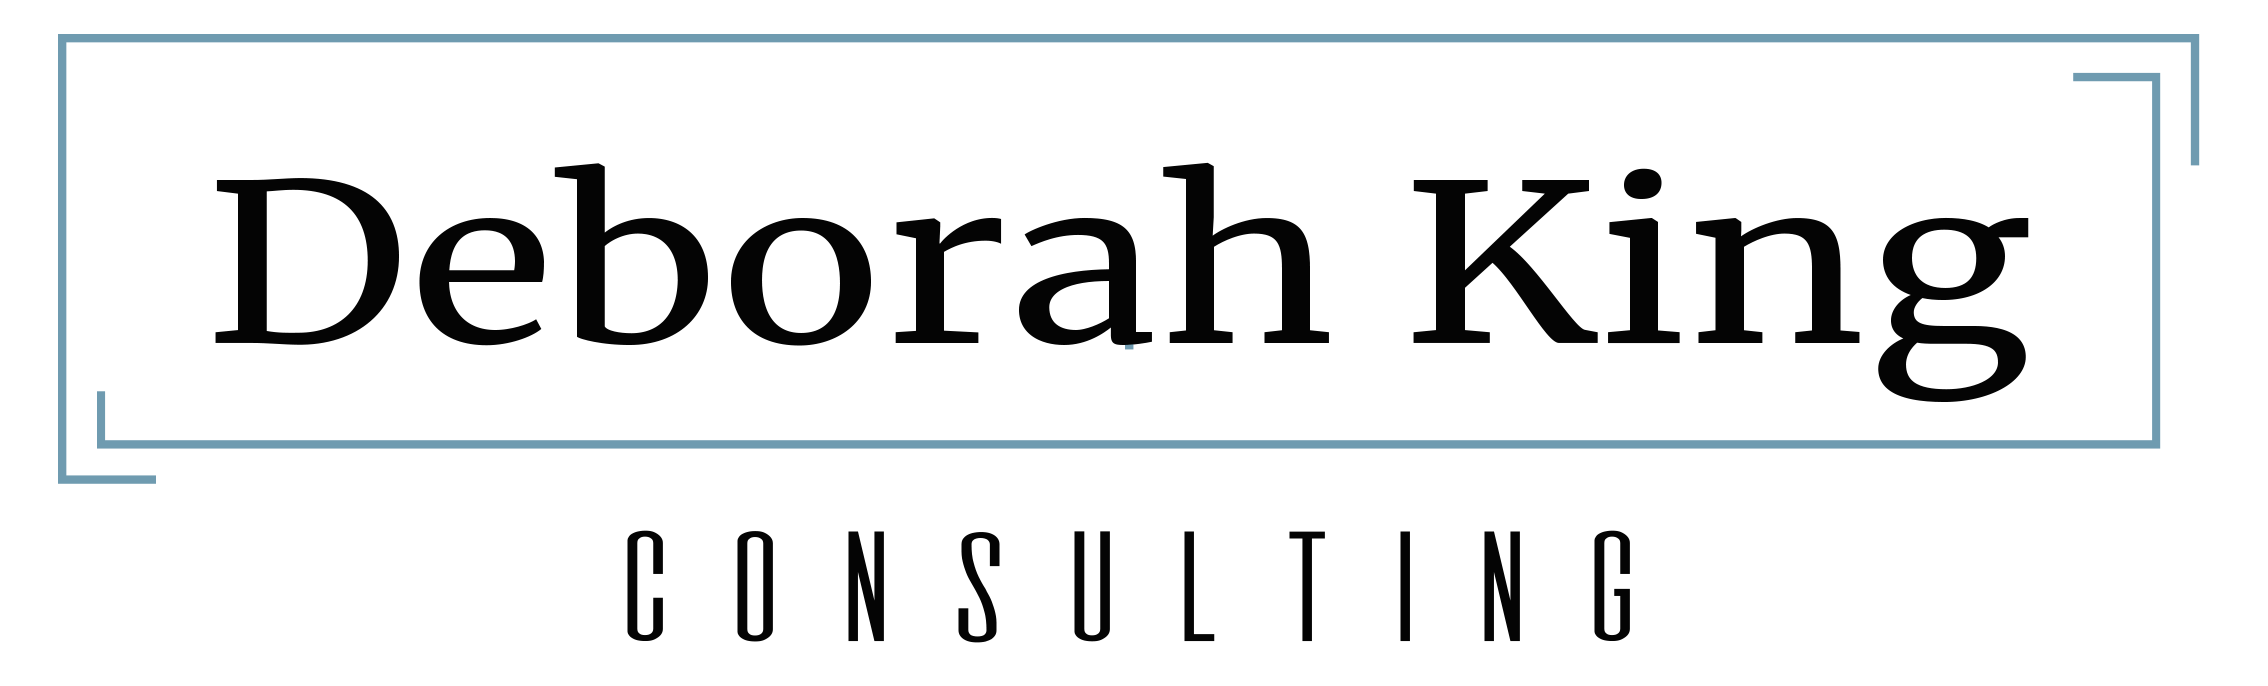 Deborah King Consulting - Tech Support for Older Adults